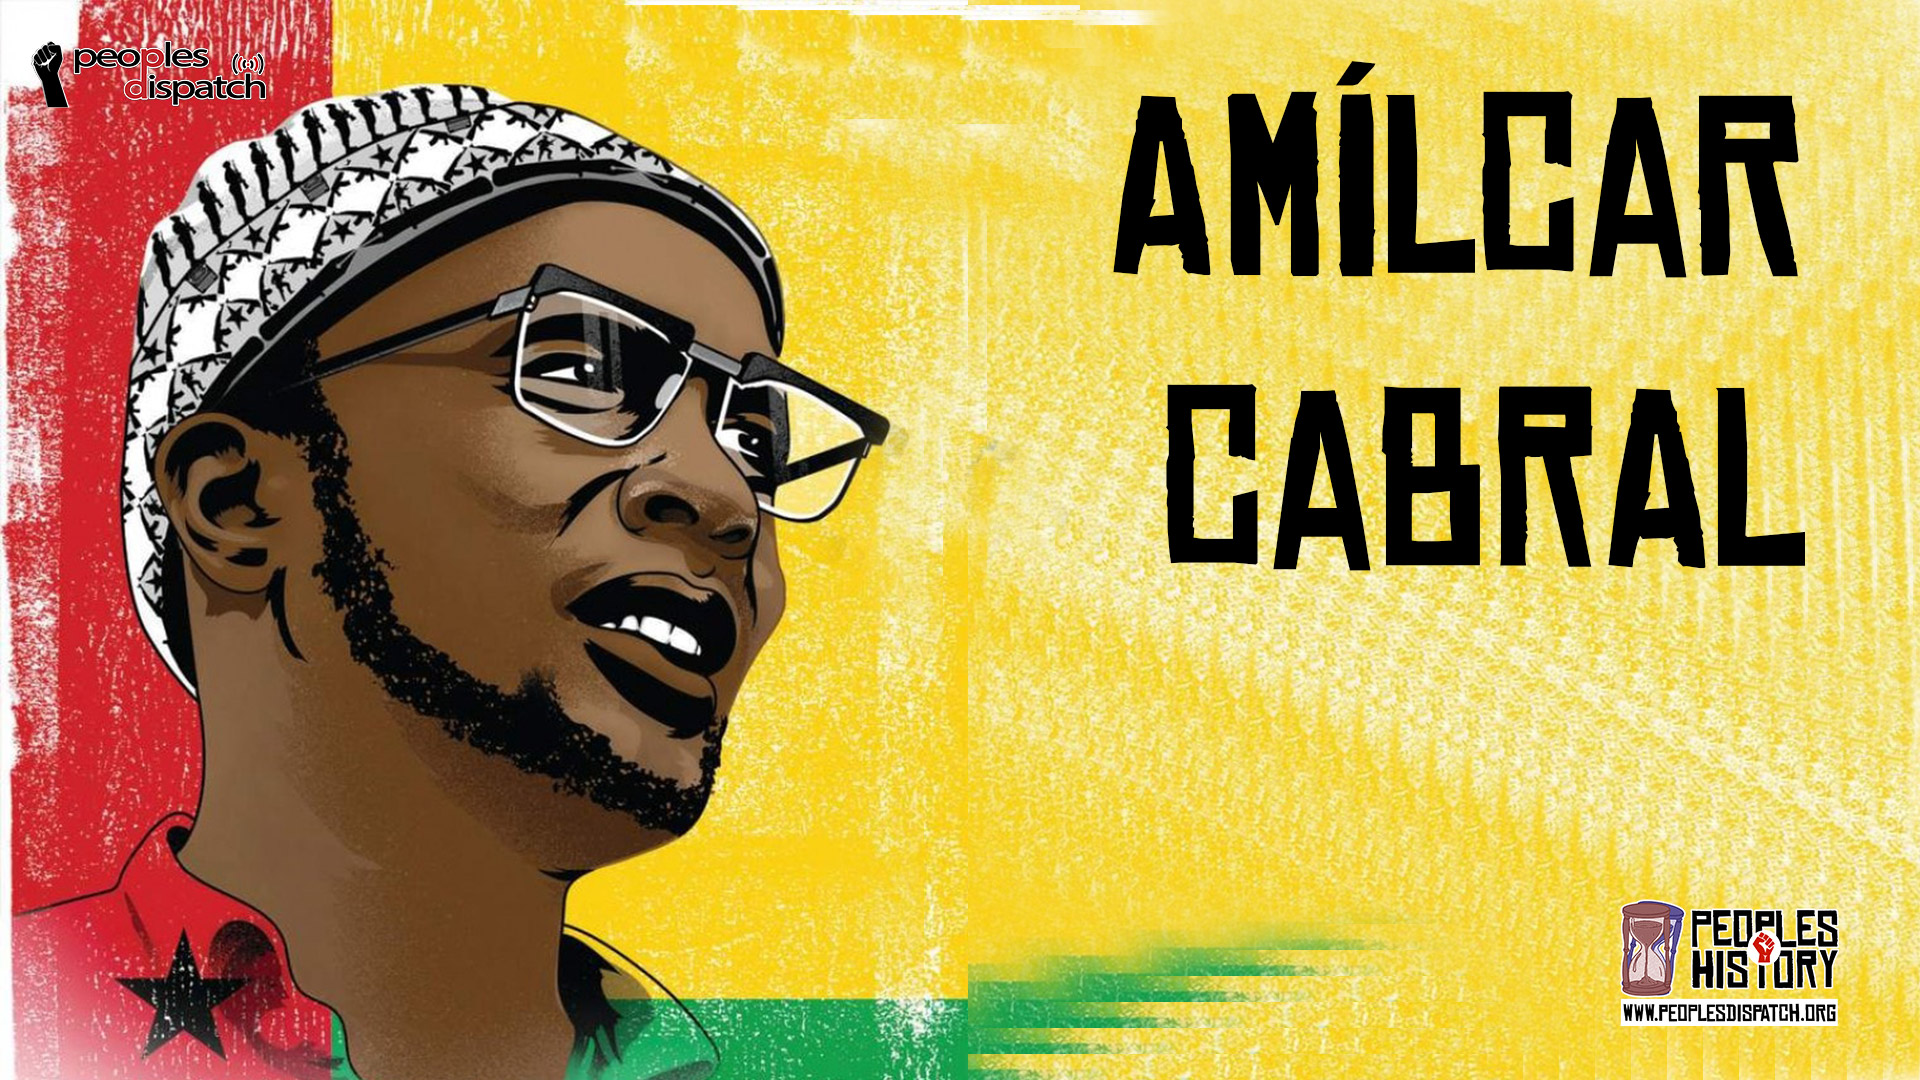 Assassination of Amílcar Cabral, one of Africa's foremost anti-colonial  leaders : Peoples Dispatch